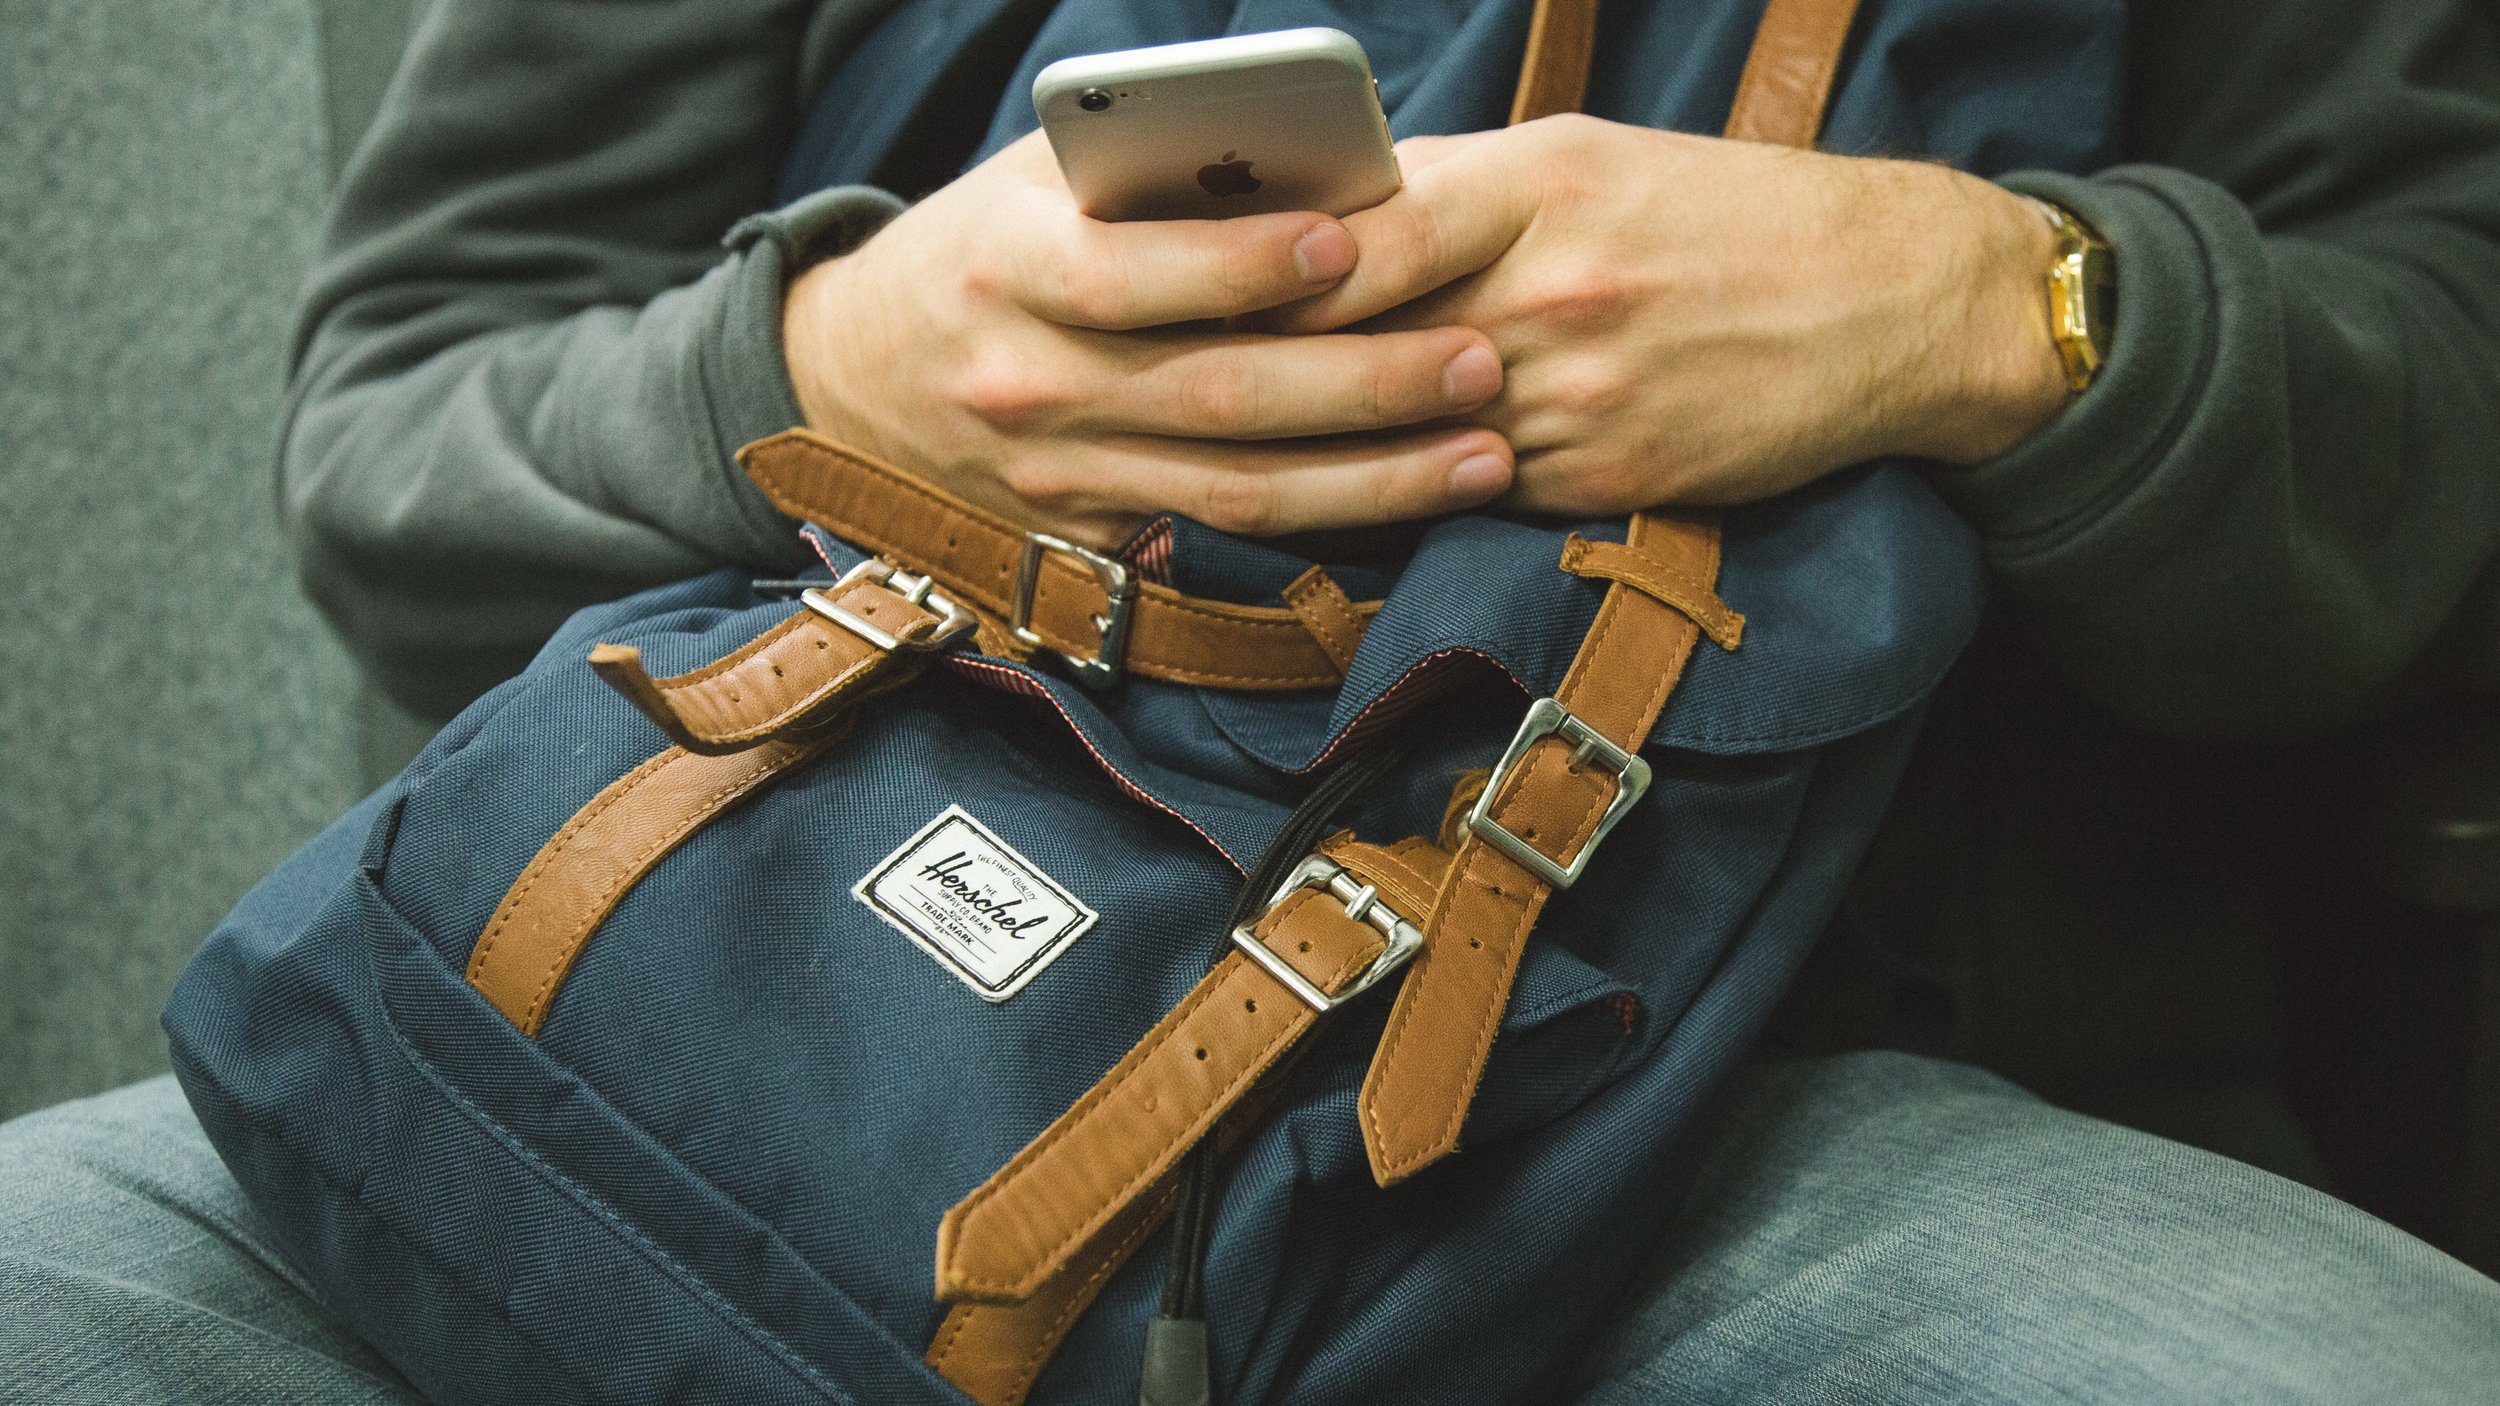 man with phone and bag.jpg